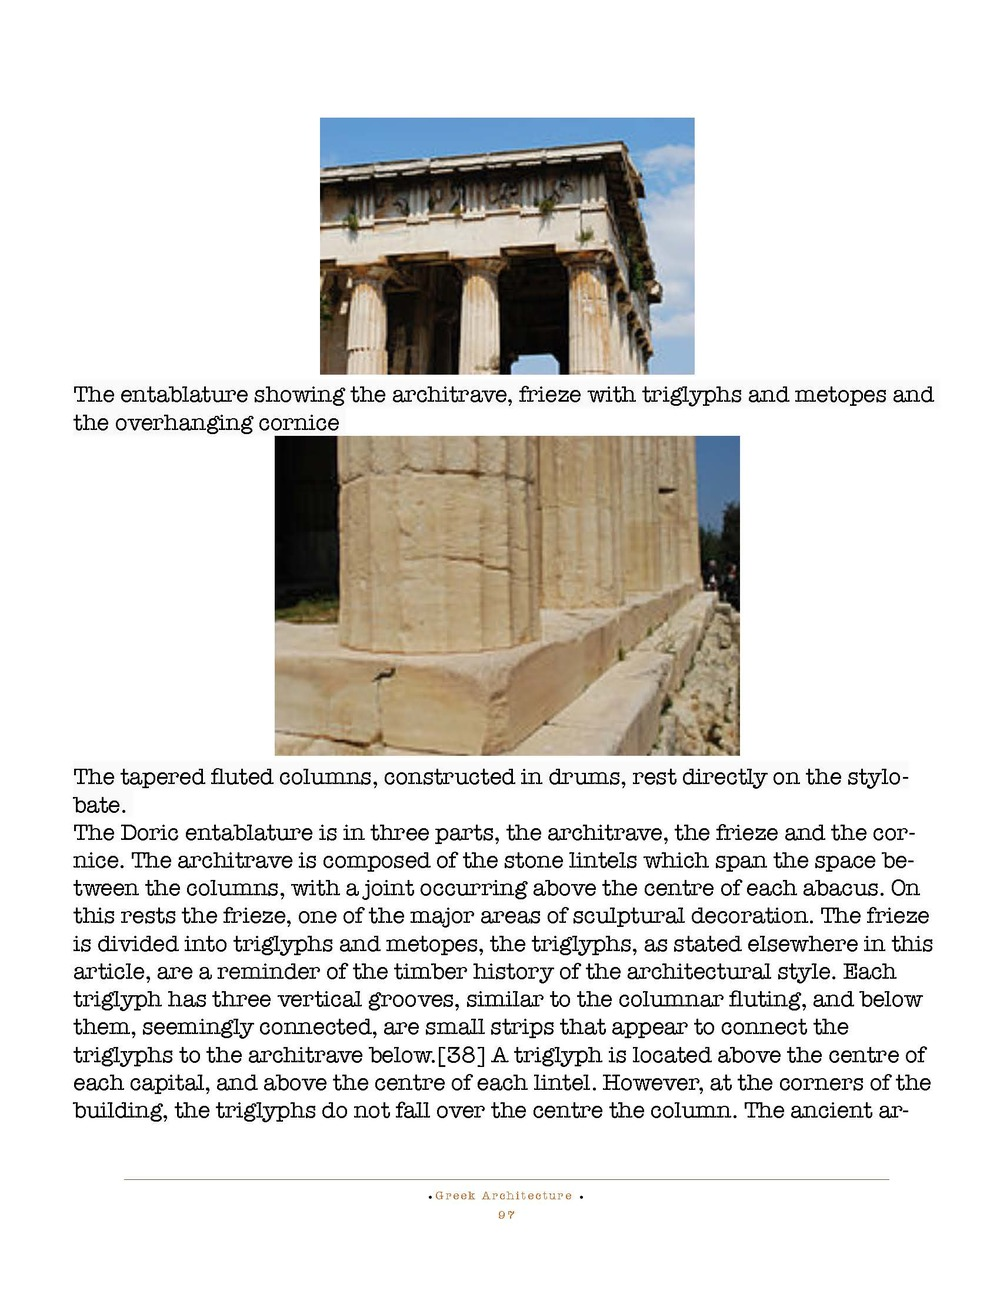 HOCE- Ancient Greece Notes_Page_097.jpg